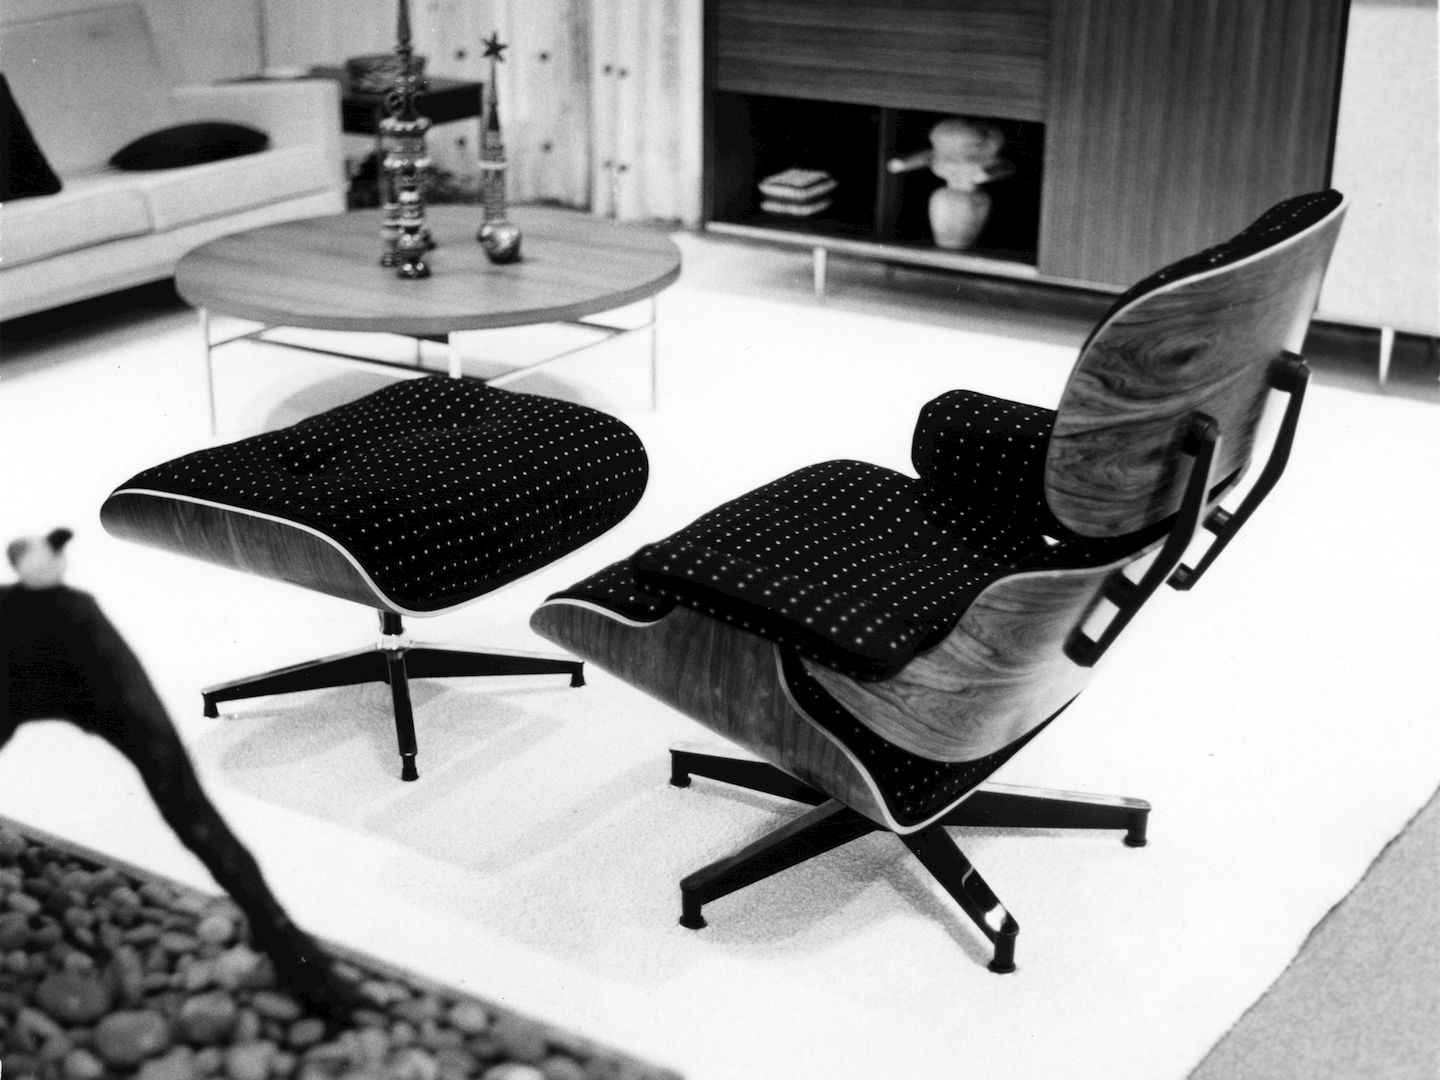 Vitra Chalres Eames : Vitra an eames lounge chair in fabric? really?